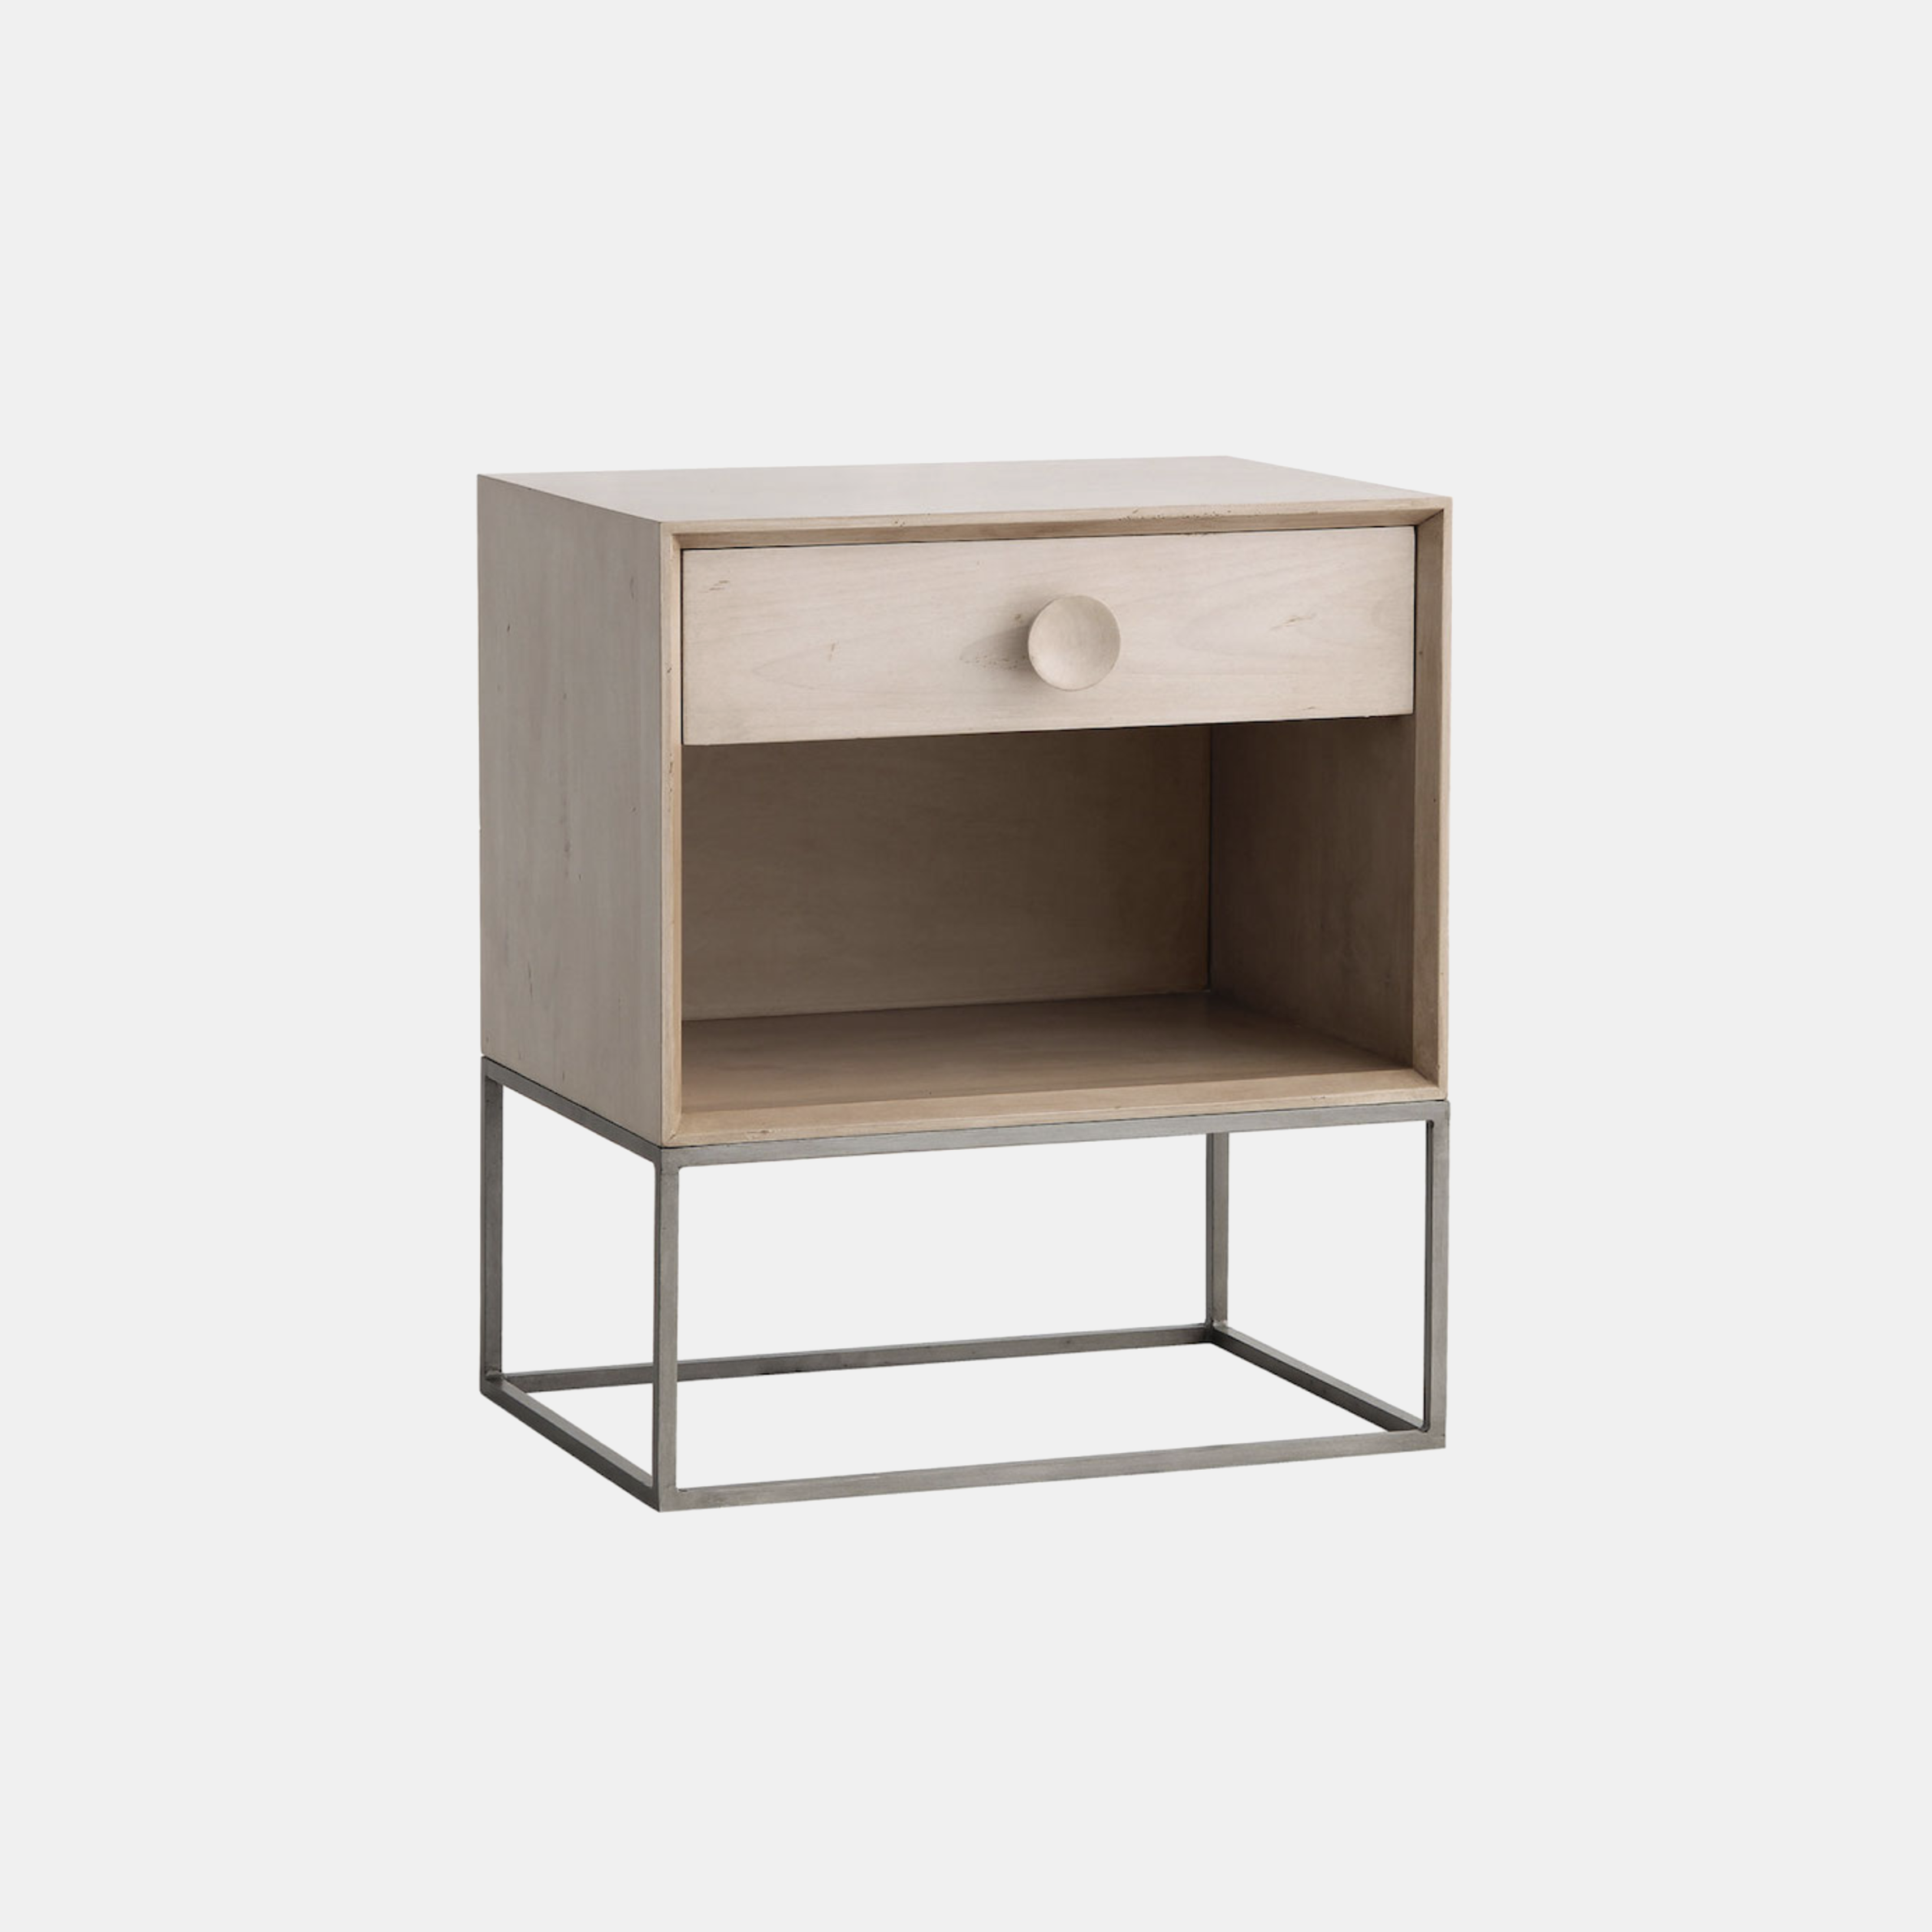 """Spencer Nightstand  22""""l x 16""""d x 25.5""""h Available in several wood and metal finishes. Also available as 2-drawer nightstand, 3- and 6-drawer dressers, and 4-door and 2-door/3-drawer entertainment consoles. SKU578RFH"""